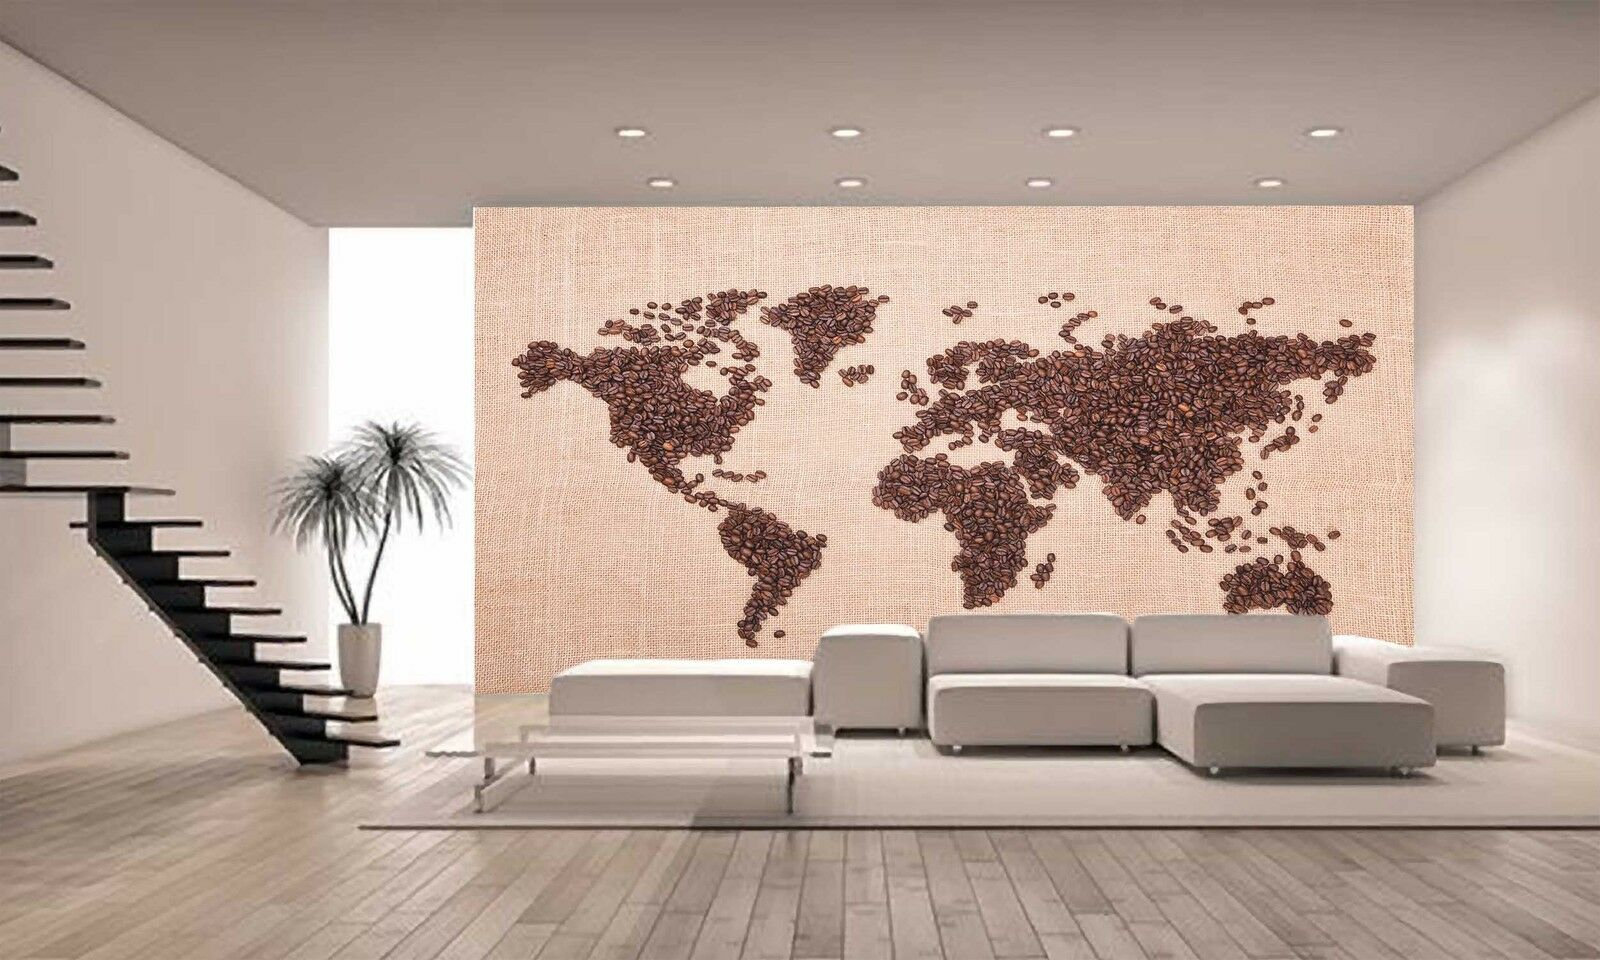 MAP MADE OF COFFEE BEANS Wall Mural Photo Wallpaper GIANT DECOR Paper Poster